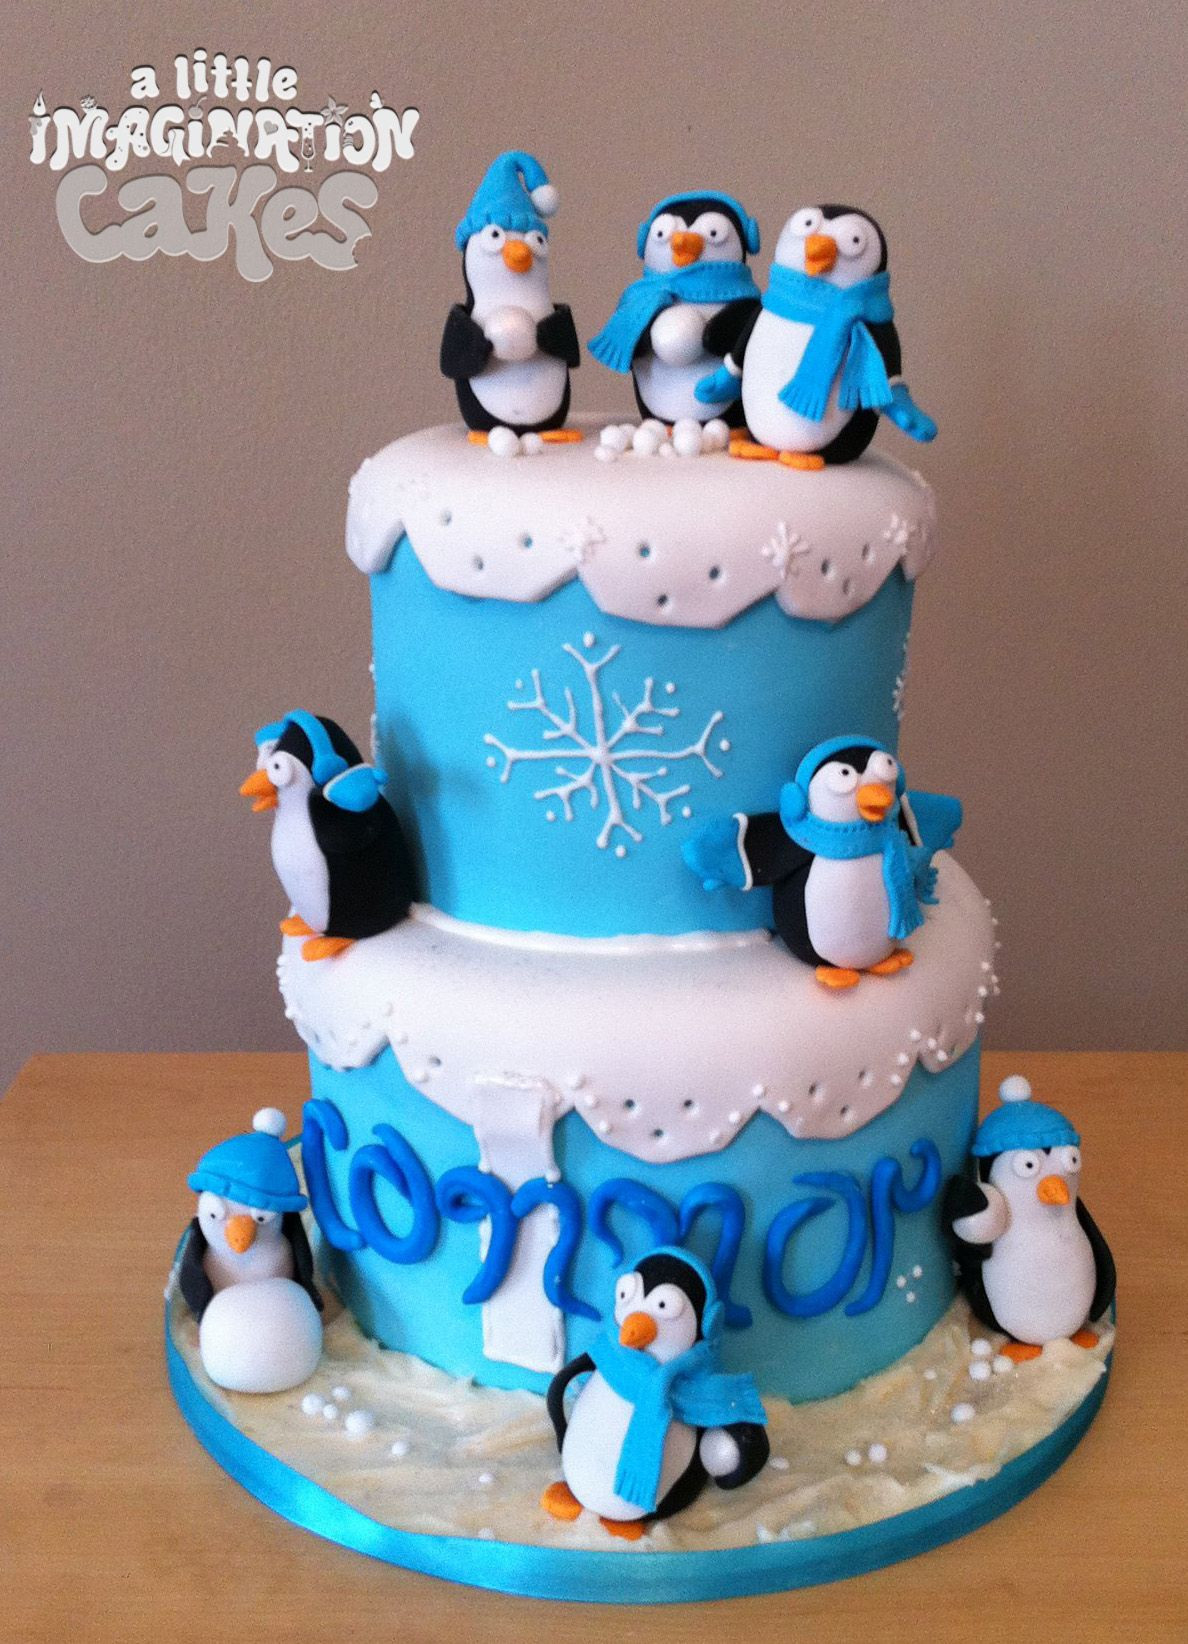 Best ideas about Penguins Birthday Cake . Save or Pin Penguin 1st Birthday Cake by A Little Imagination Cakes Now.